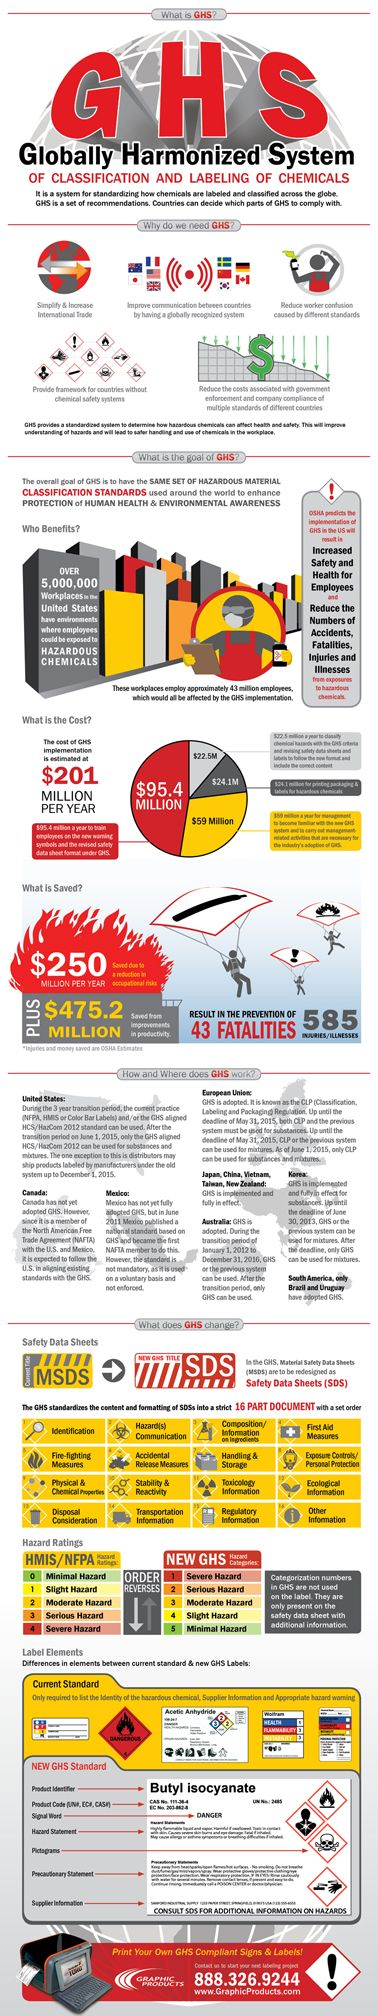 Globally Harmonized System (GHS) Infographic Safety